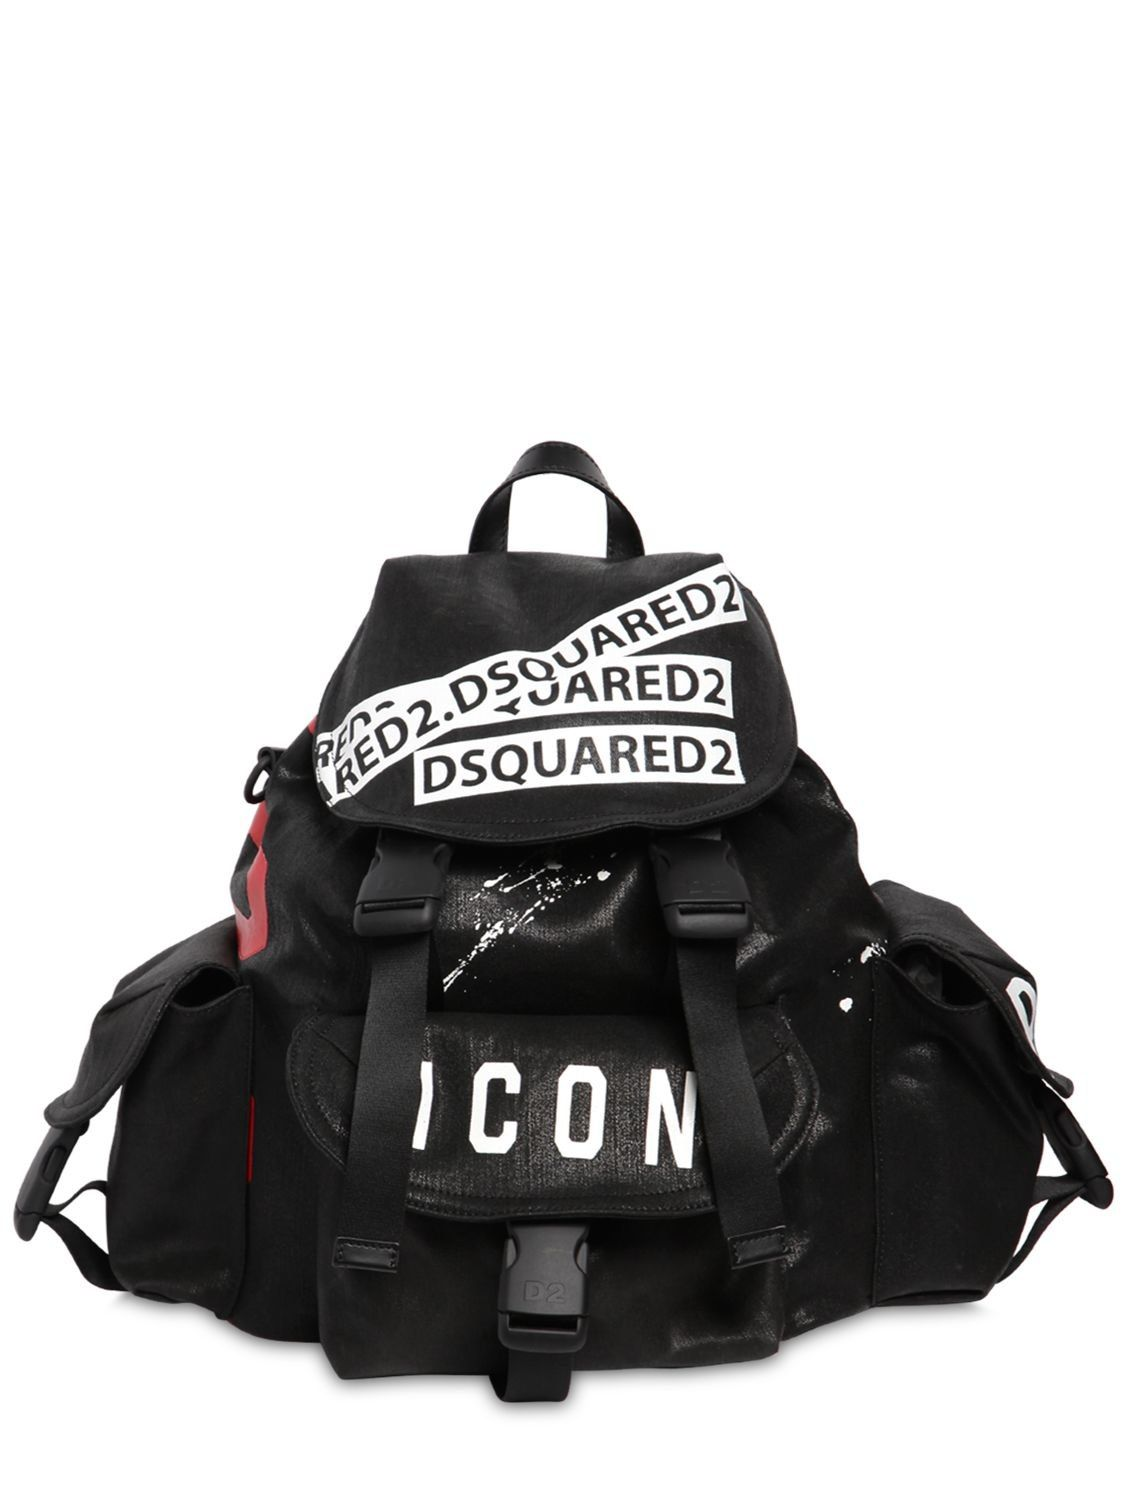 e63b827d580a DSQUARED2 ICON PRINTED WAXED DENIM BACKPACK.  dsquared2  bags  lining   denim  backpacks  lace  cotton